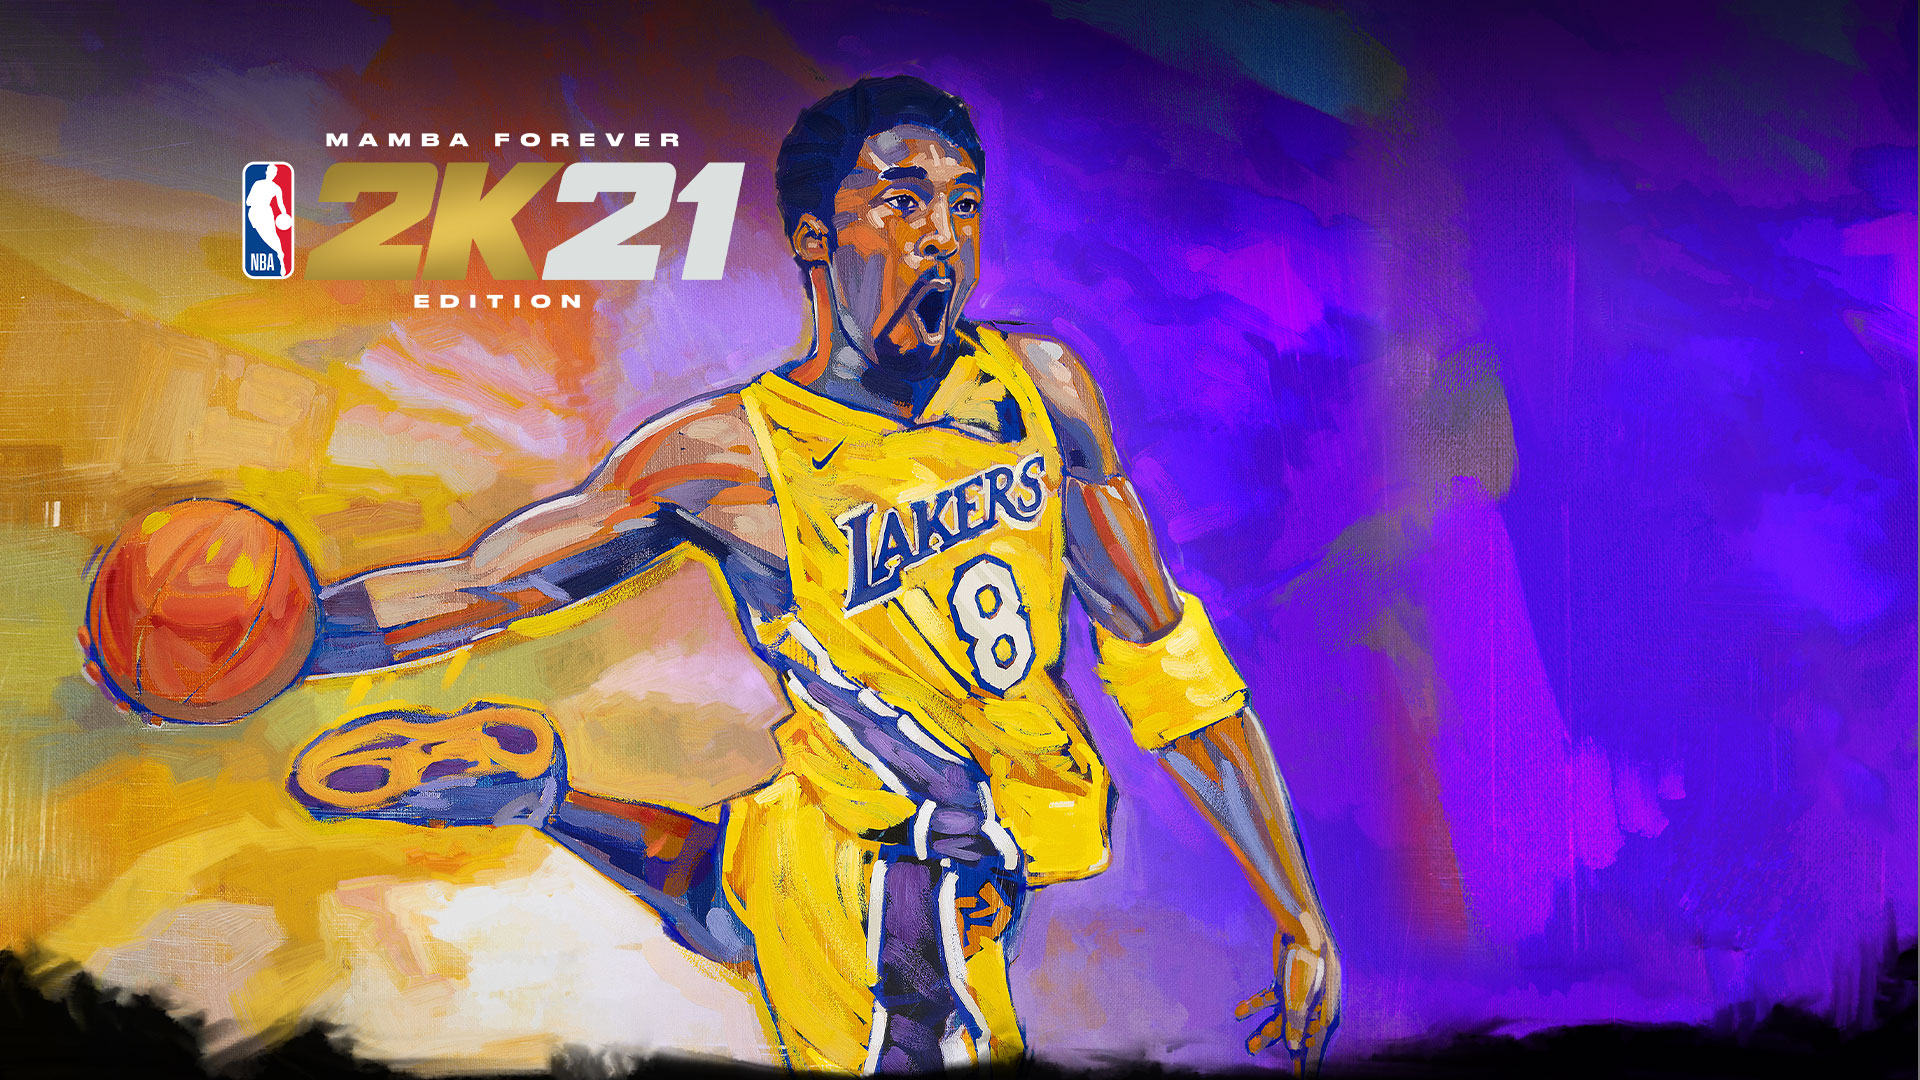 Mamba Forever Edition, NBA 2K21, Painting of Kobe Bryant going in for a dunk